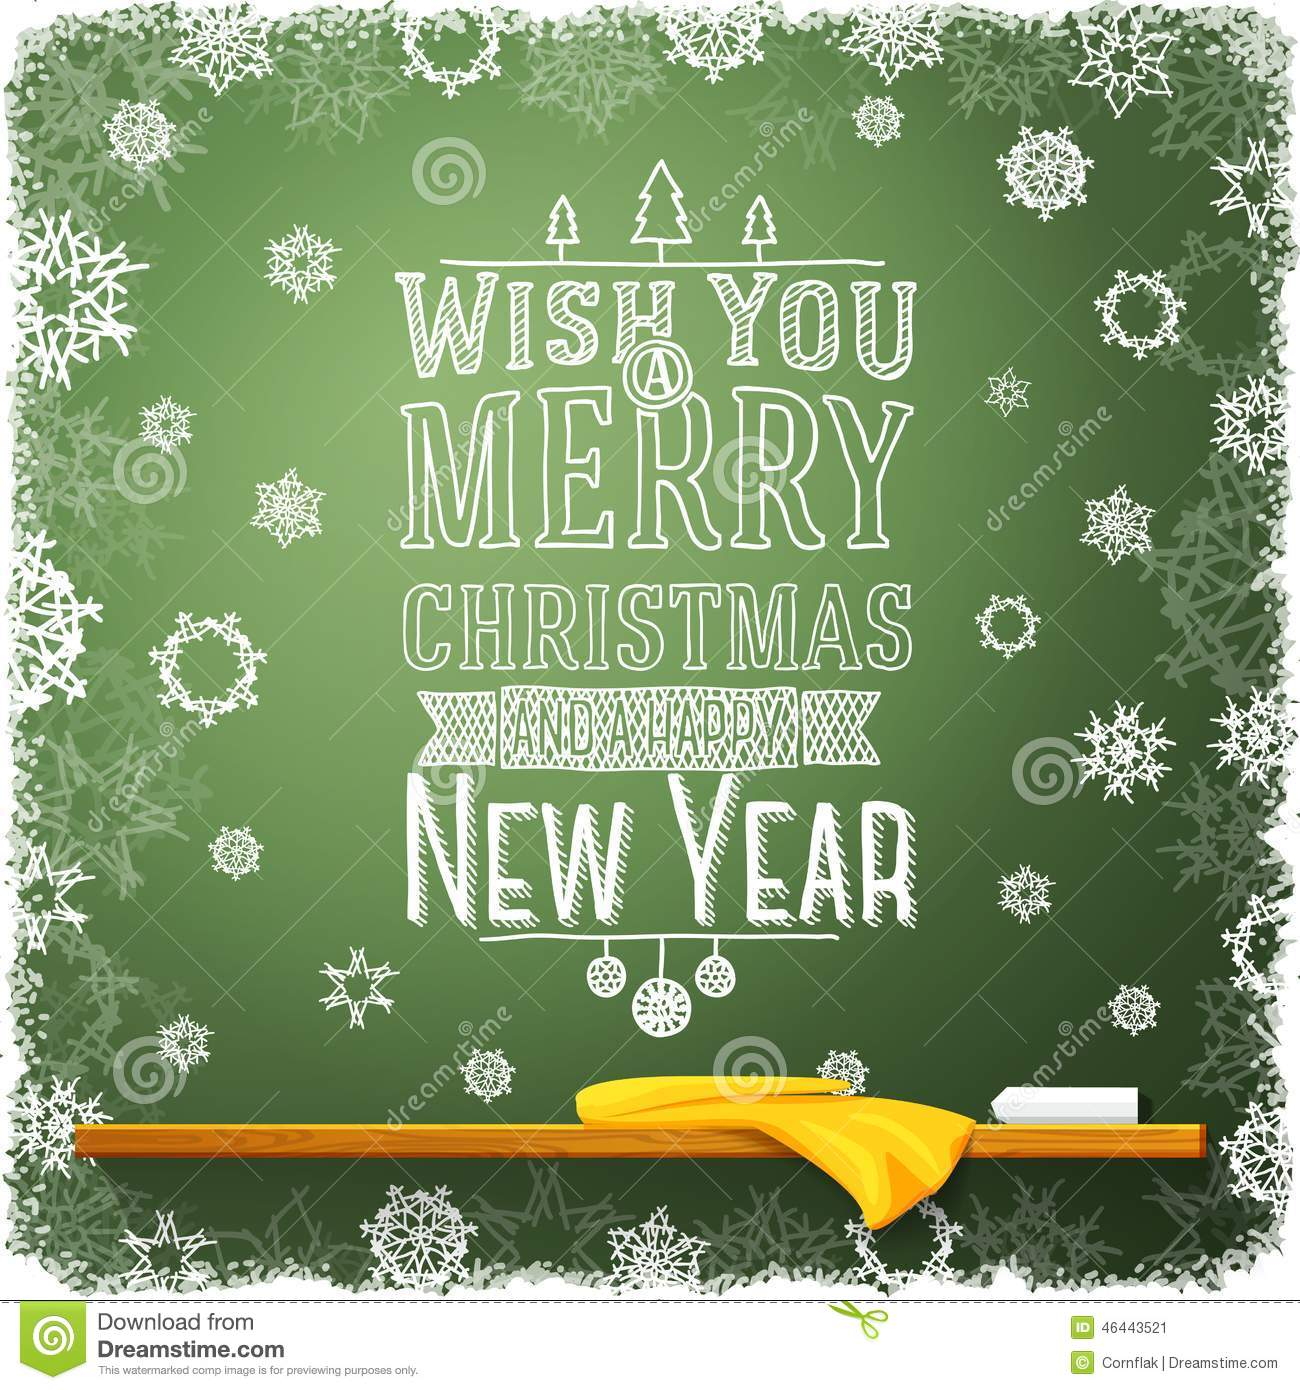 wish you merry christmas and a happy new year